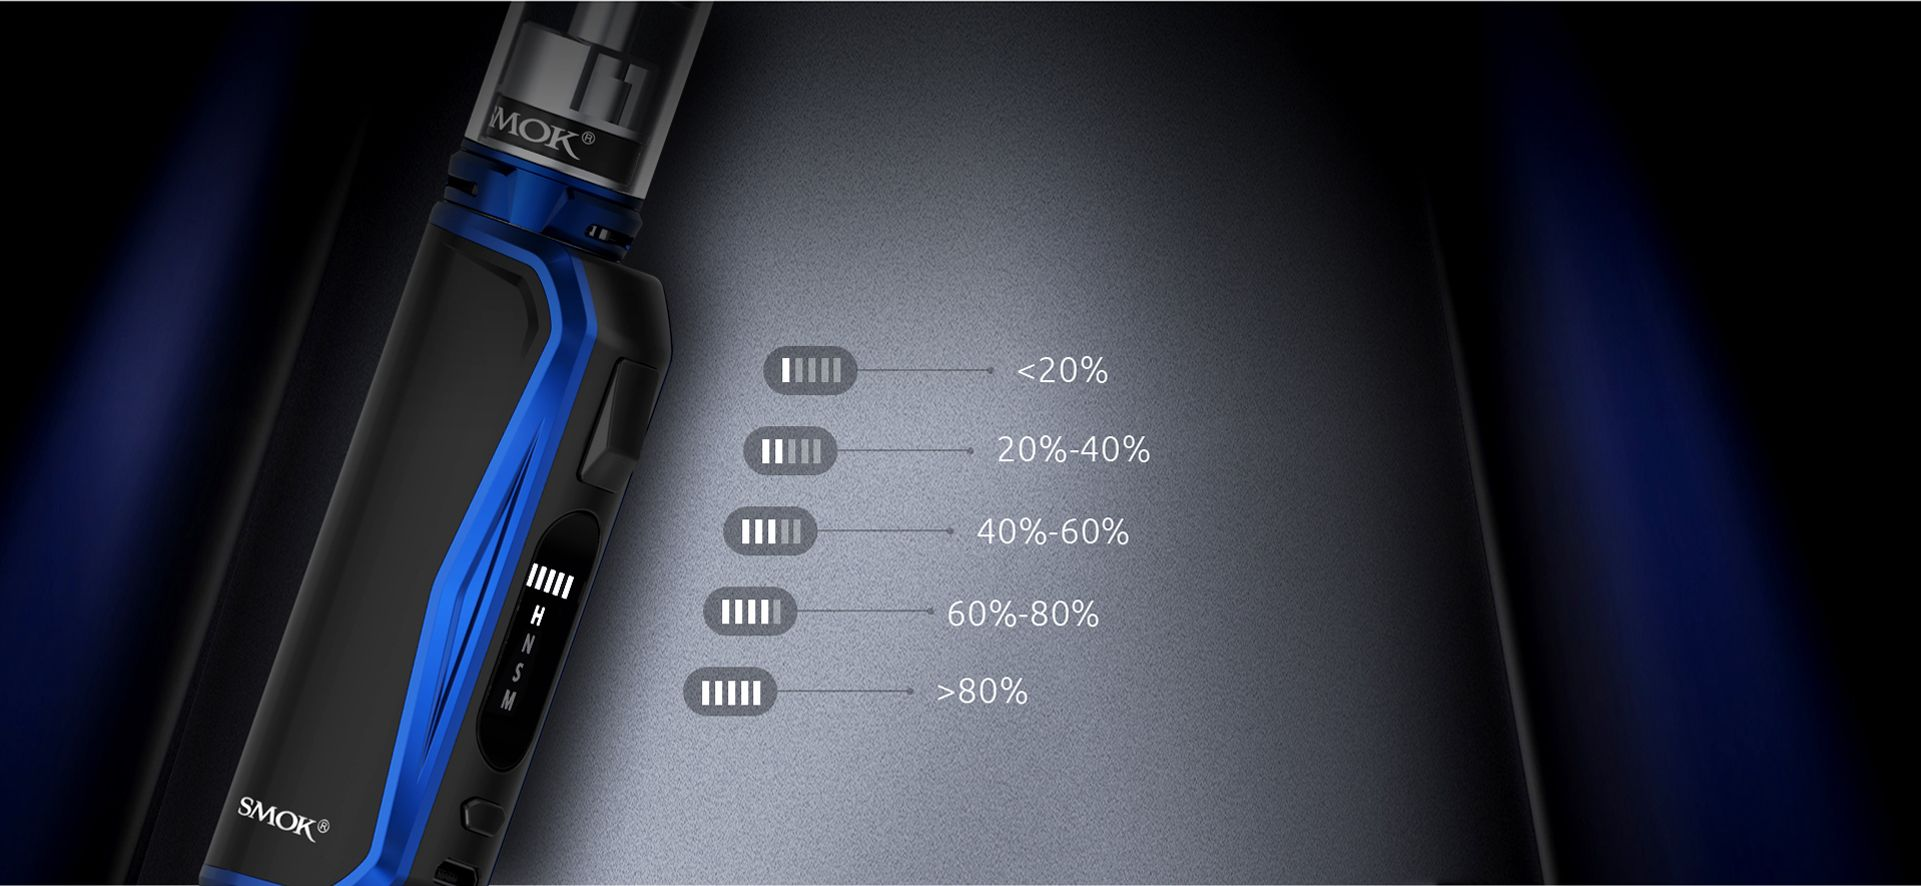 smok priv n19 kit device battery life indicator